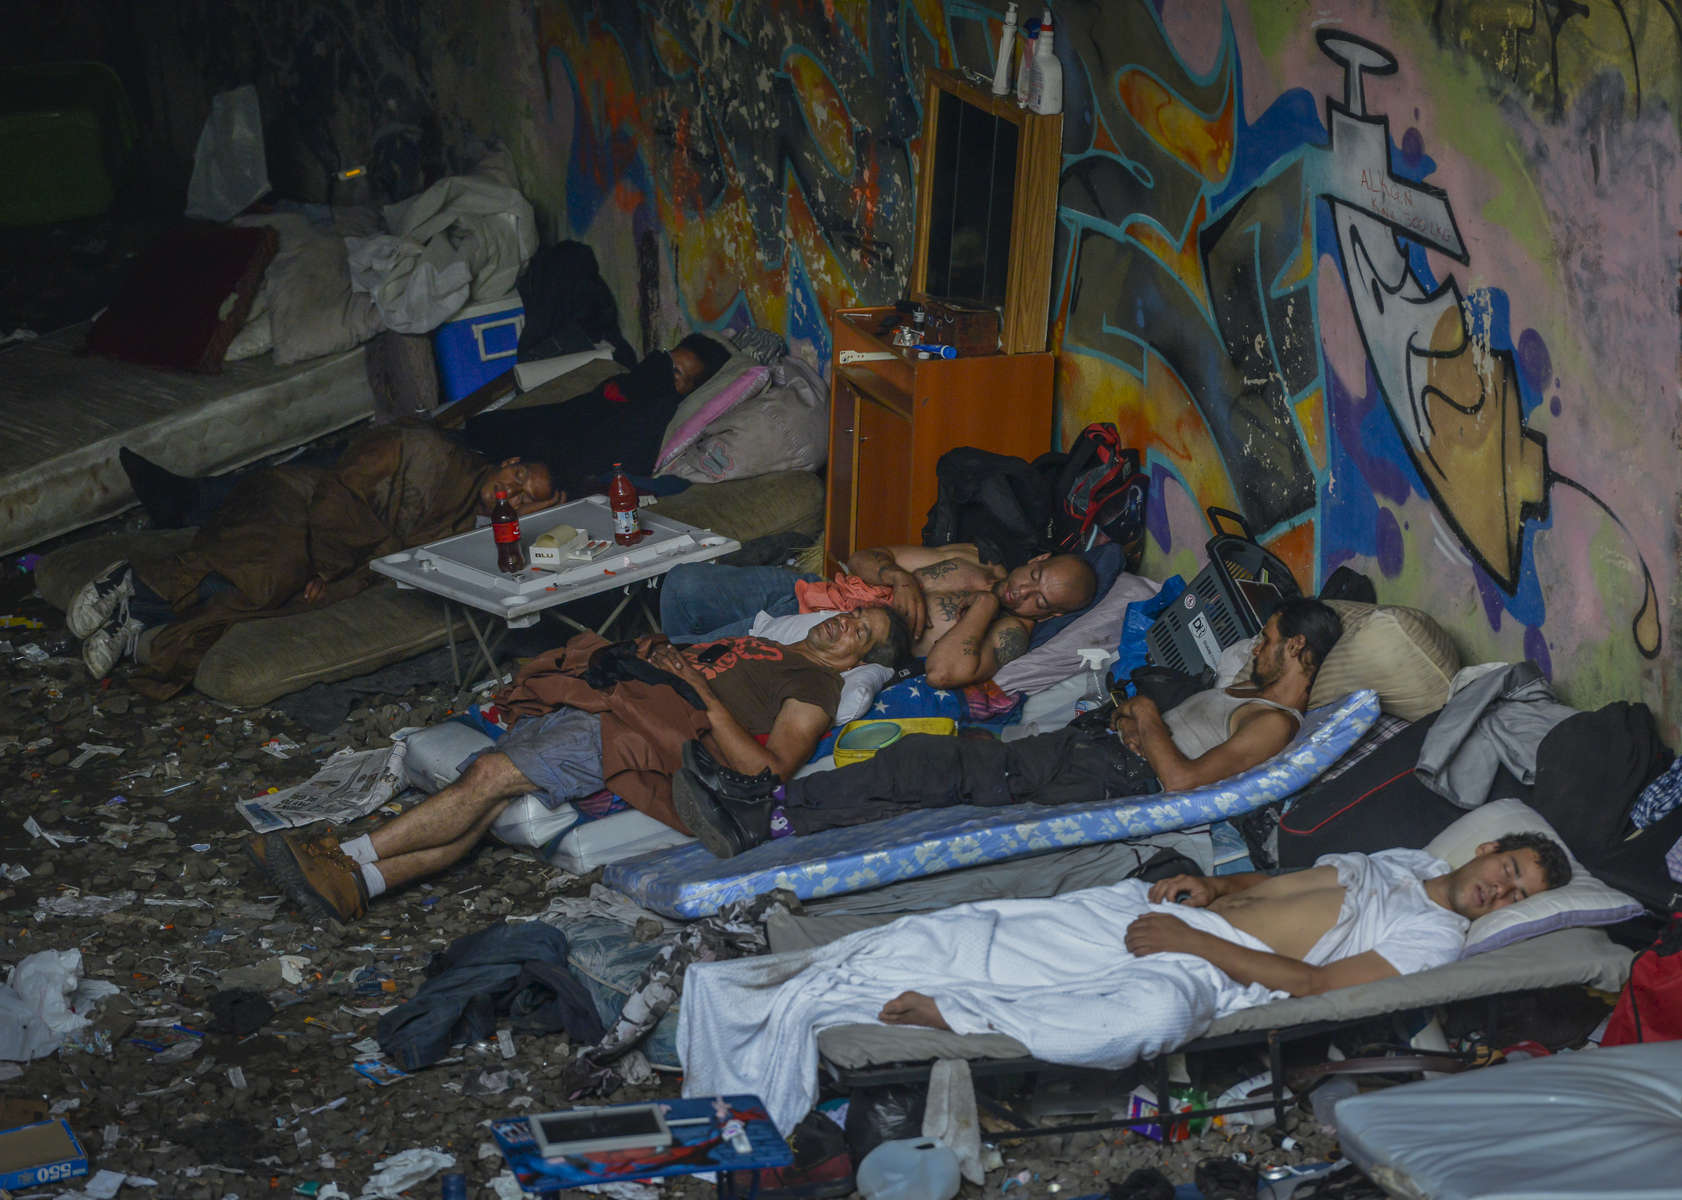 New Yorkers suffering from severe drug addiction and homelessness, sleep underneath an overpass in a space known as {quote}The Hole{quote} at the corner of St. Ann's Place and 150th Street in Mott Haven, the Bronx on September 3, 2015.  One day after Mayor de Blasio visited this South Bronx drug lair, Sanitation Department workers hauled out most of the addicts' piles of trash and the filthy furniture and dozens of syringes. As many as 20 men typically stayed at the site which has been a blight on the community for years.